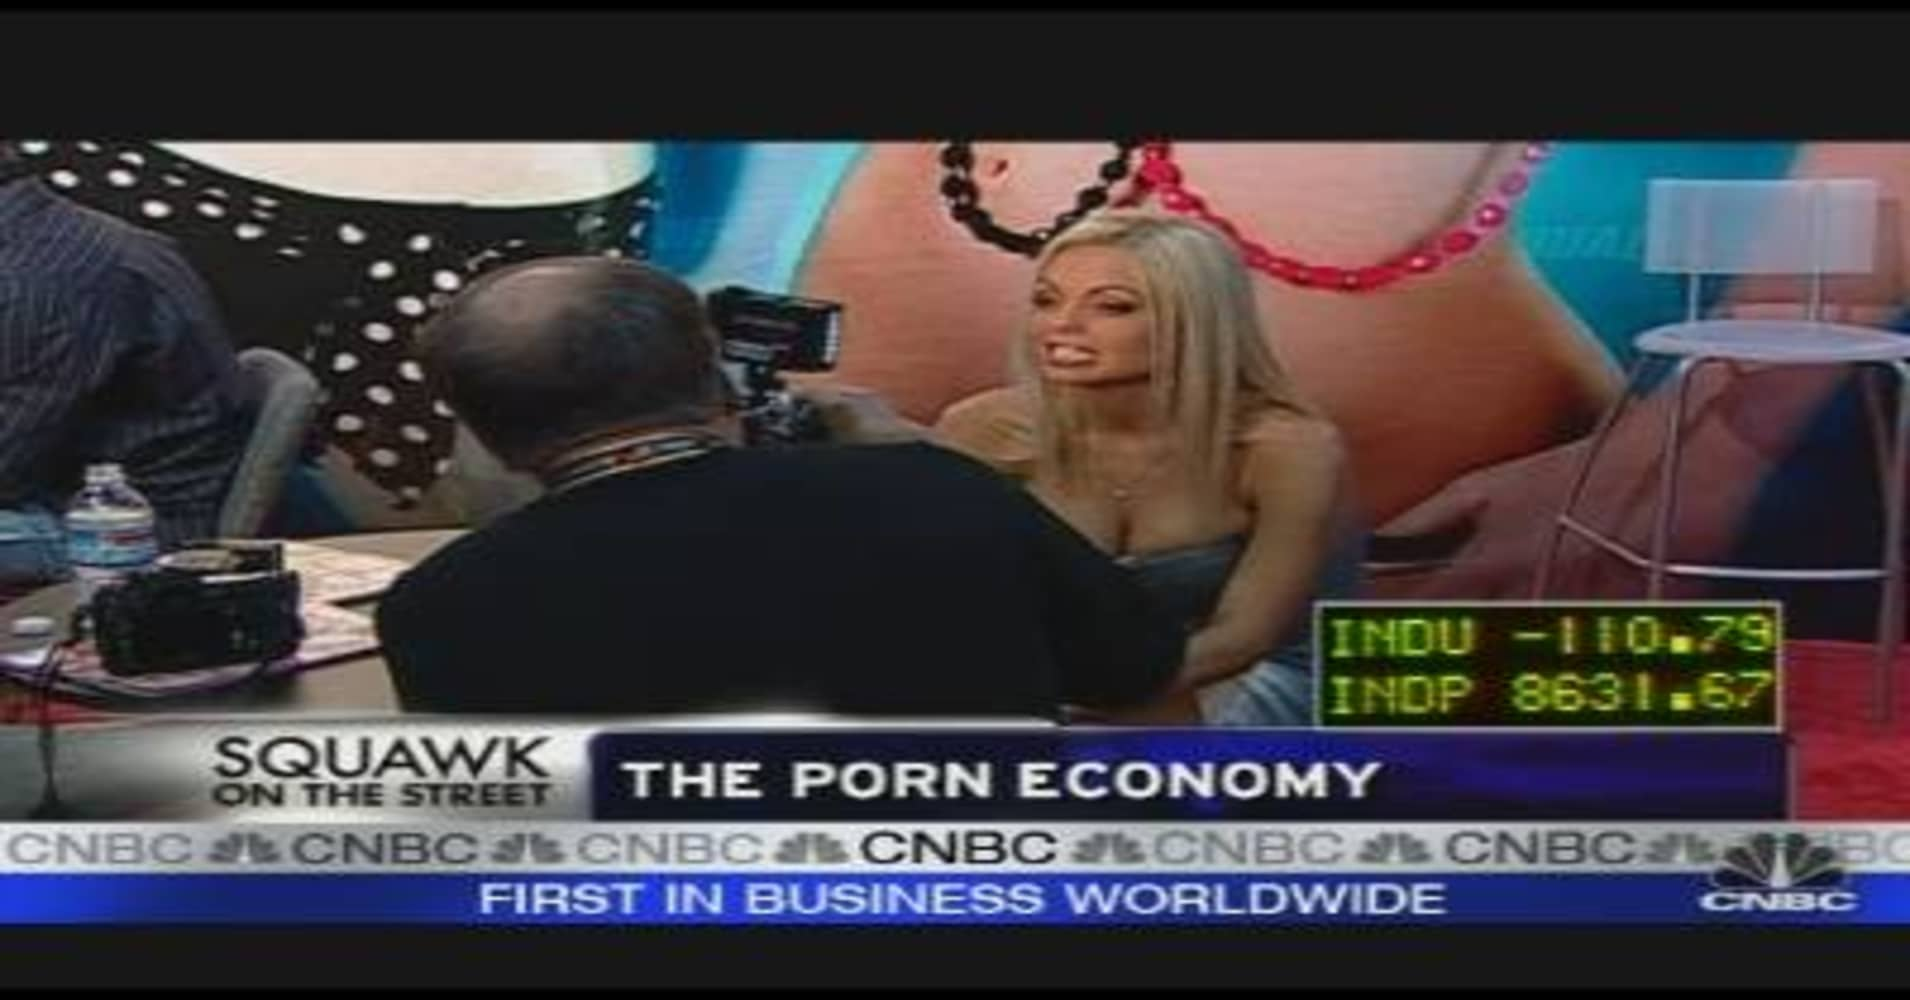 Search engines sex boob